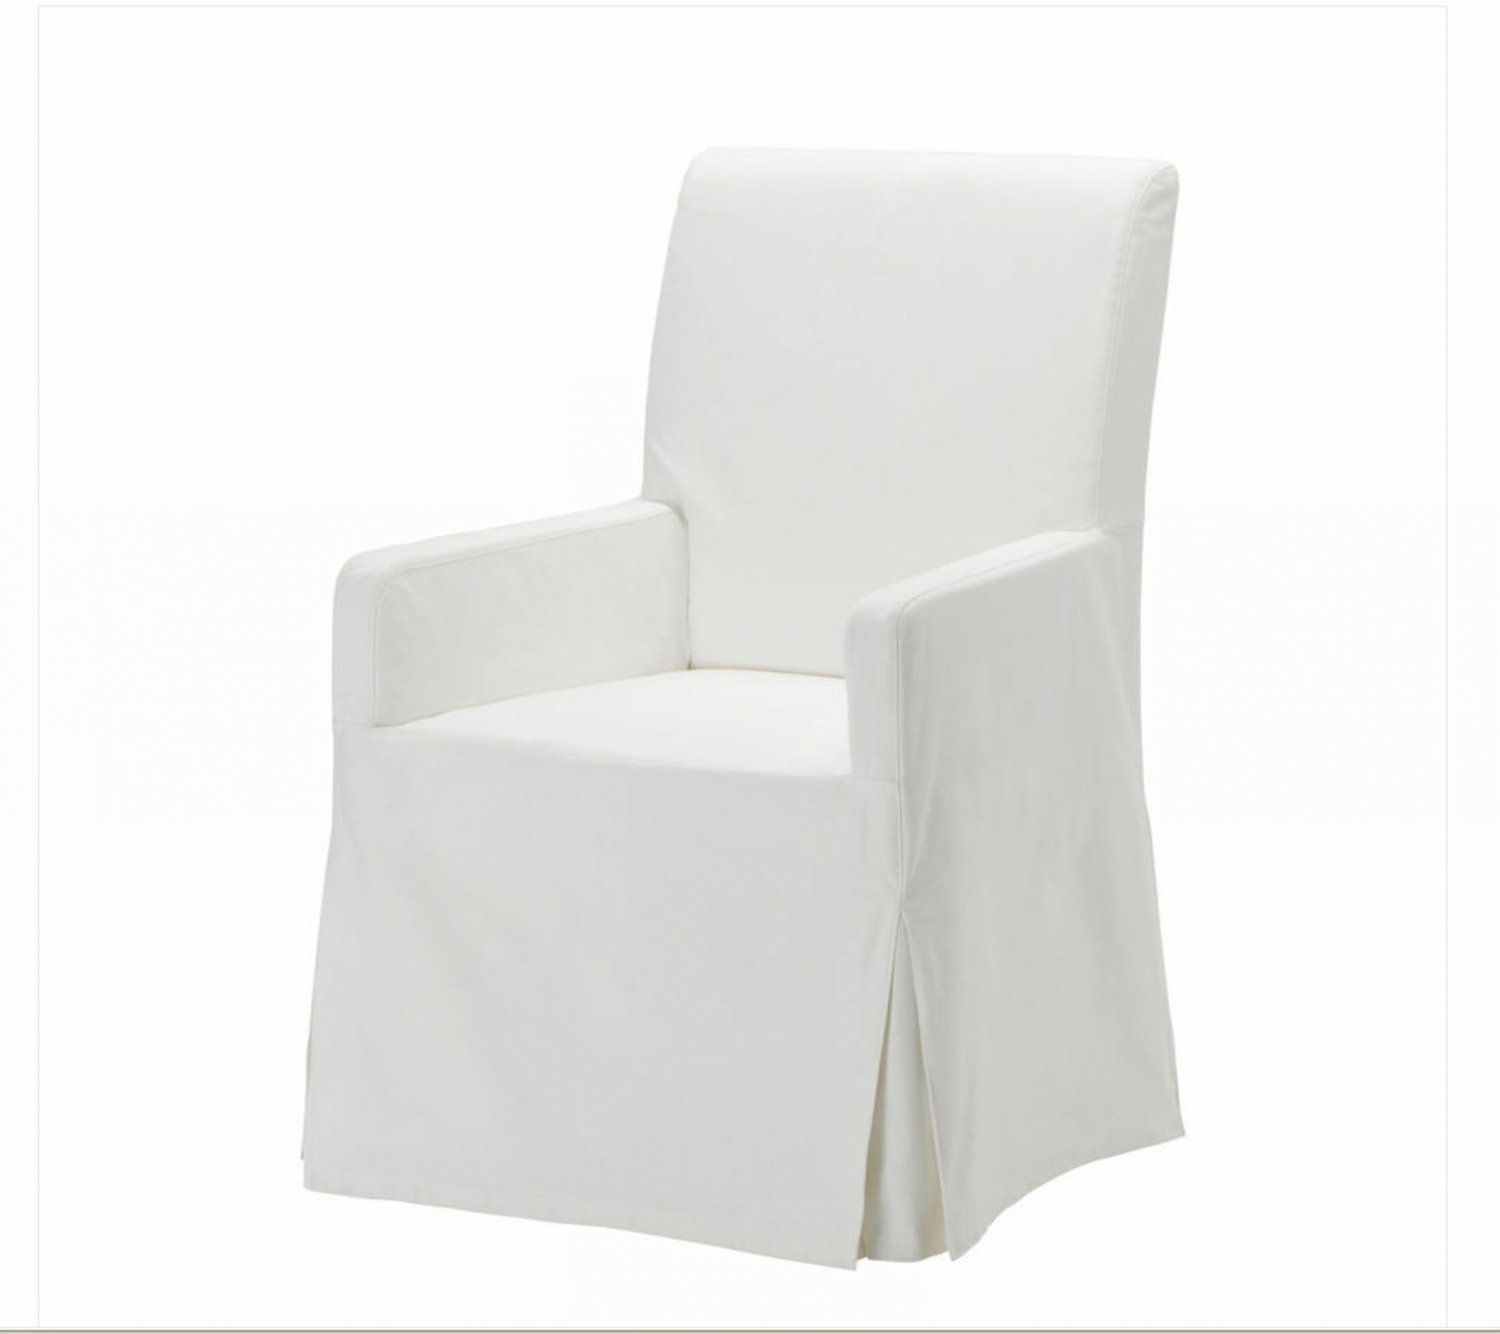 Ikea Henriksdal Chair W Arms Slipcover Cover 21 Quot 54cm